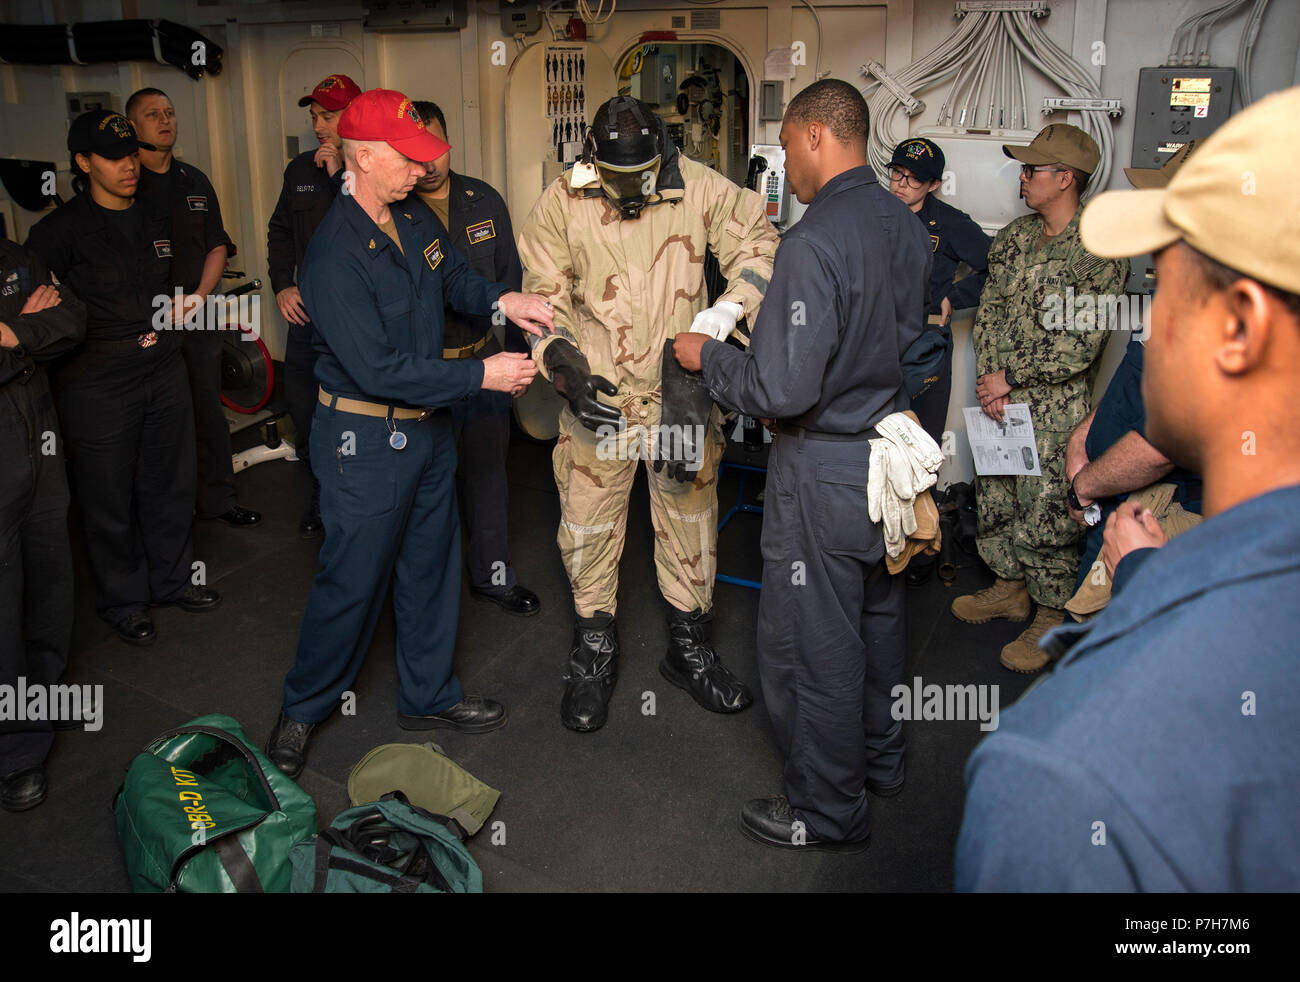 180626-N-WF272-095 SAN DIEGO (June 26, 2018) Senior Chief Culinary Specialist Anthony Hooper, left, and Ship's Serviceman Seaman Jaylan Eady, right, from Whiteville, N.C., help Logistics Specialist 2nd Class Donald Eugene, from Miami, don a chemical, biological and radiological (CBR) overgarment during a CBR training exercise aboard the amphibious assault ship USS Bonhomme Richard (LHD 6). Bonhomme Richard is currently in its homeport of San Diego, preparing for an upcoming scheduled deployment. (U.S. Navy photo by Mass Communication Specialist 1st Class Diana Quinlan/Released) - Stock Image